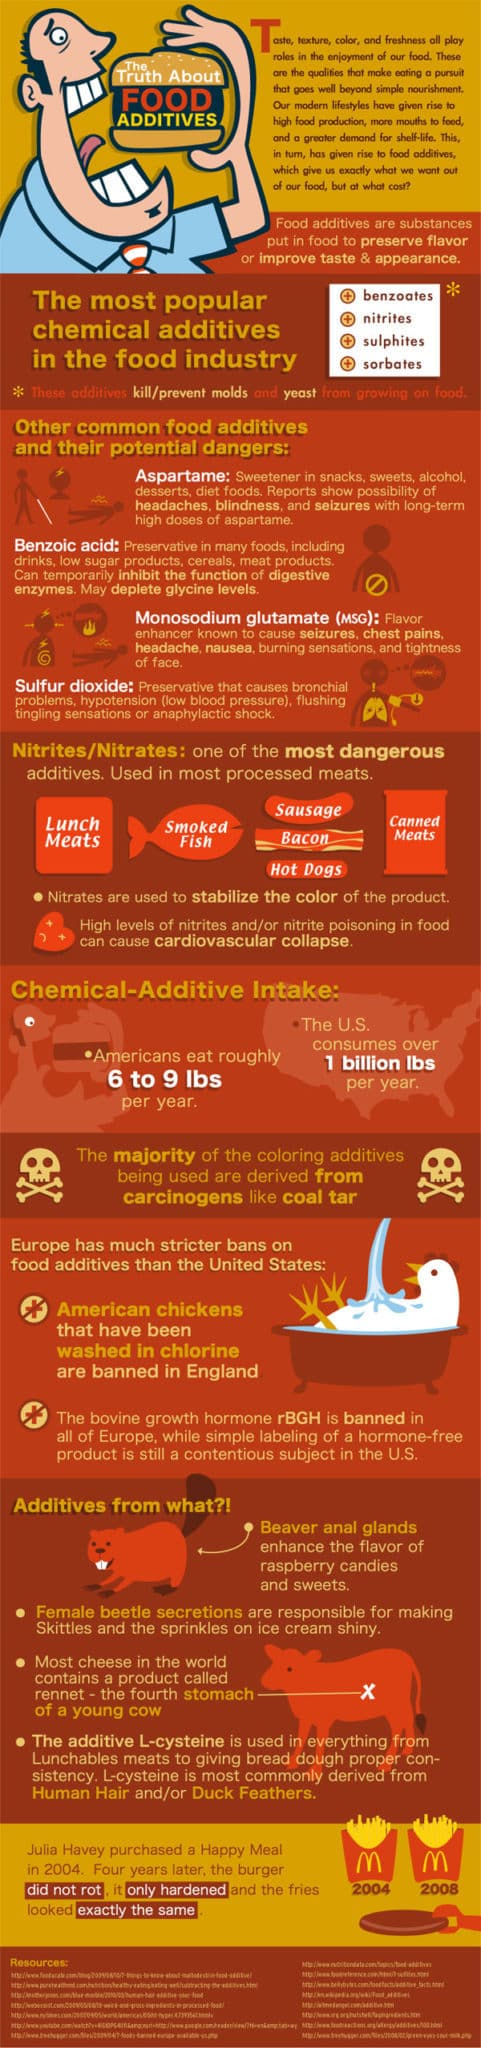 Infographic - The truth about food additives